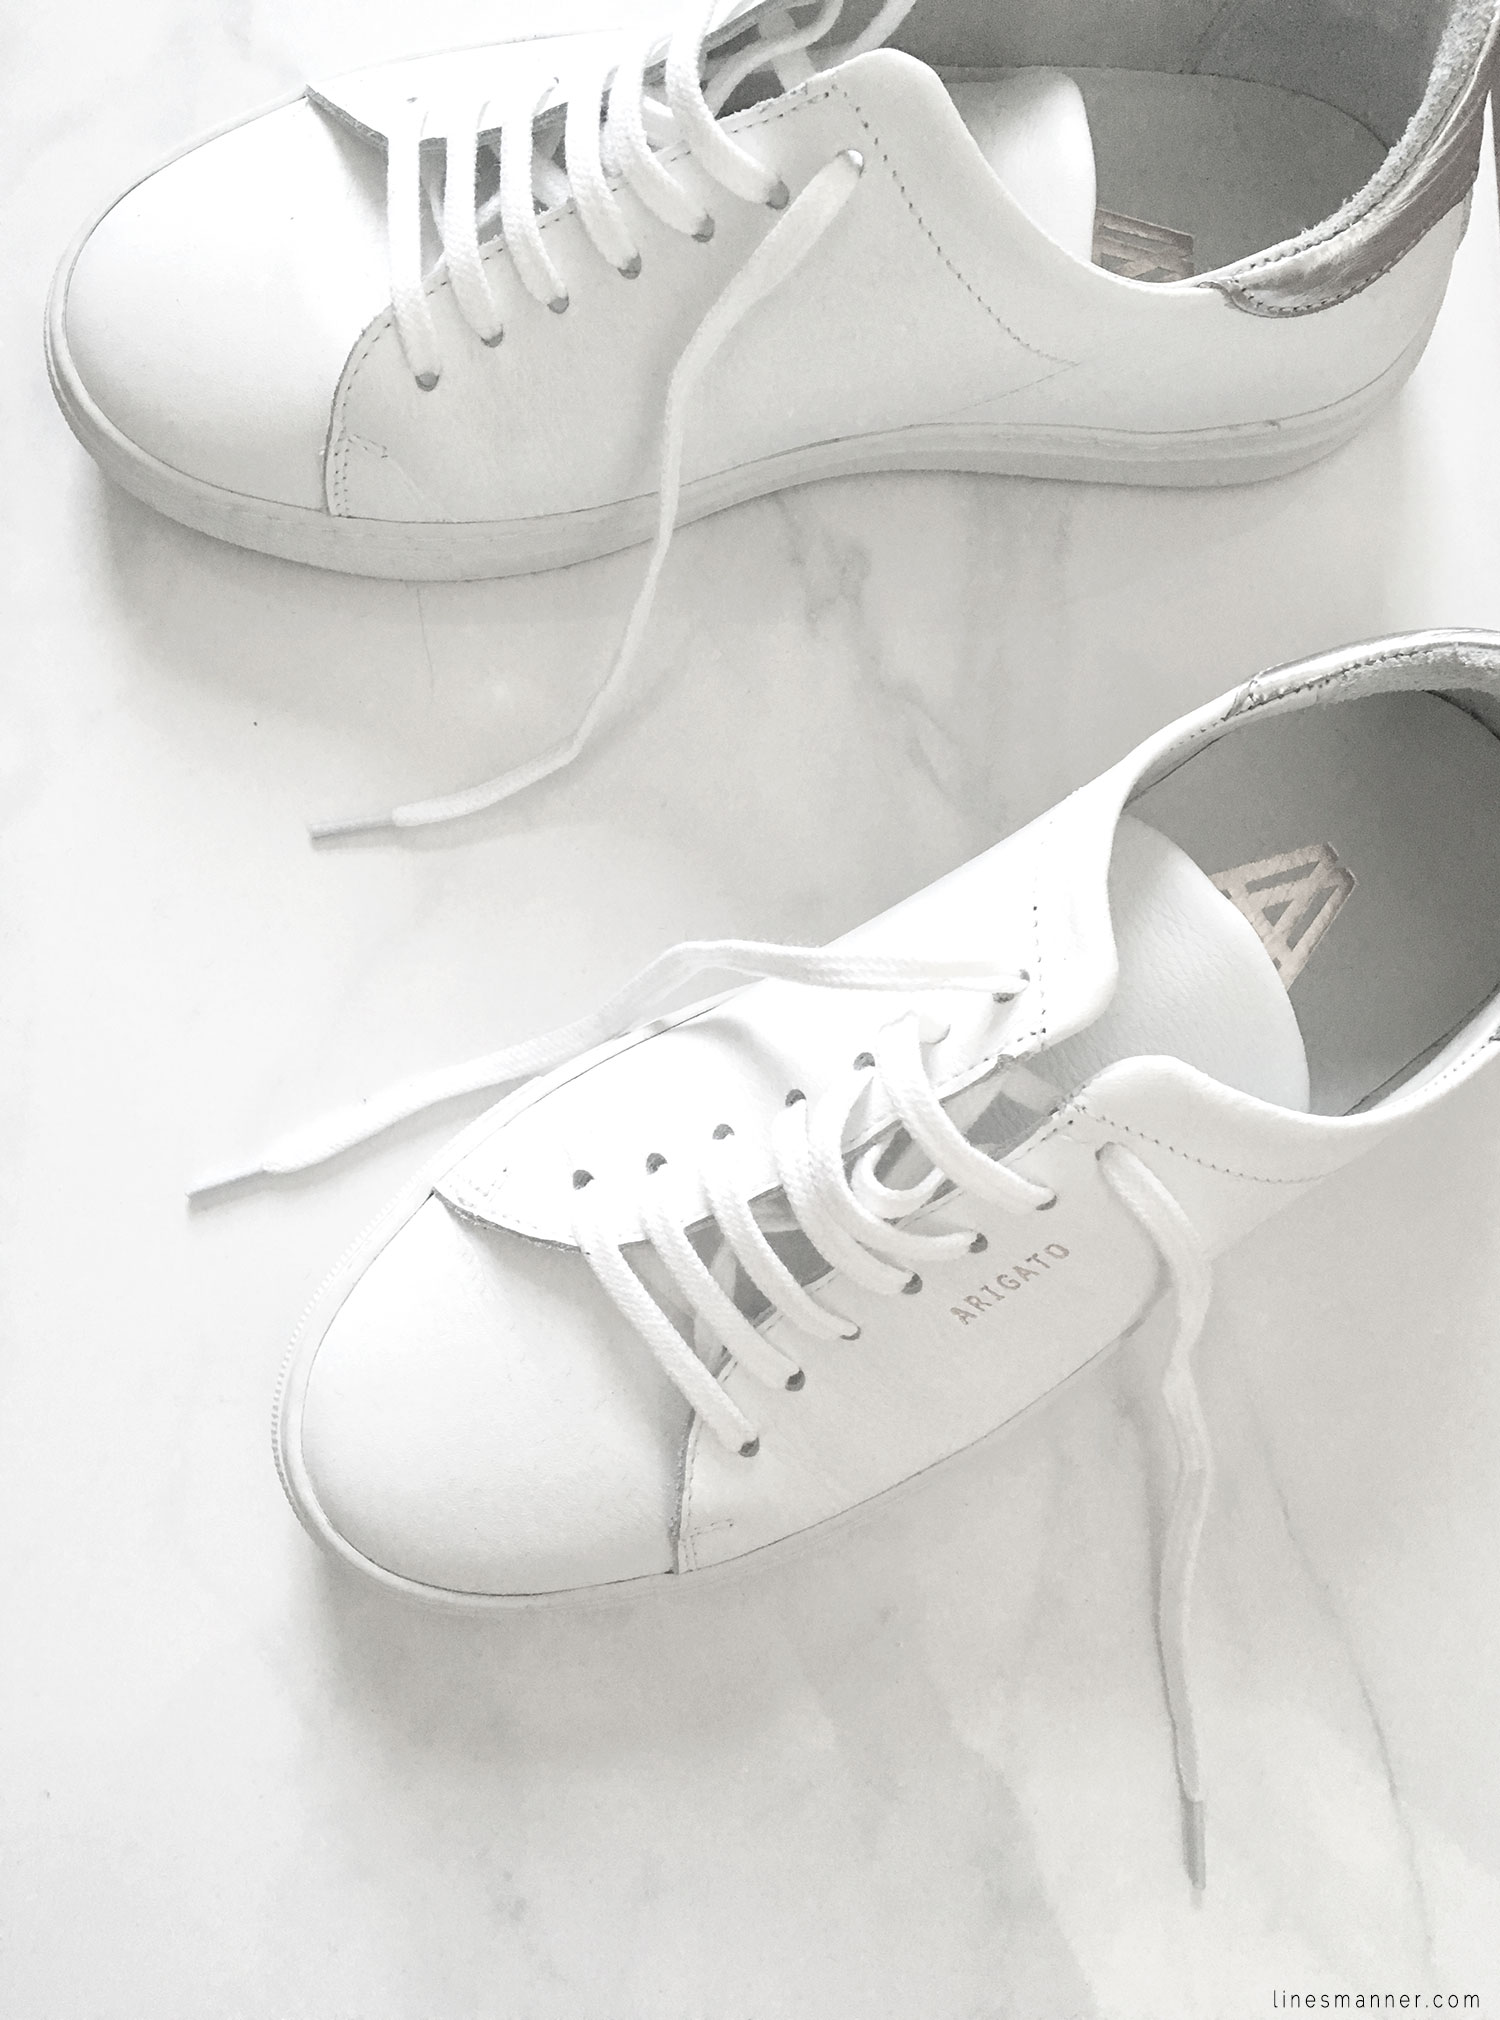 Lines-Manner-Minimal-Axel_Arigato-Sneakers-White-Essentials-Comfort-Luxe-Sporty-Edgy-Timeless-3